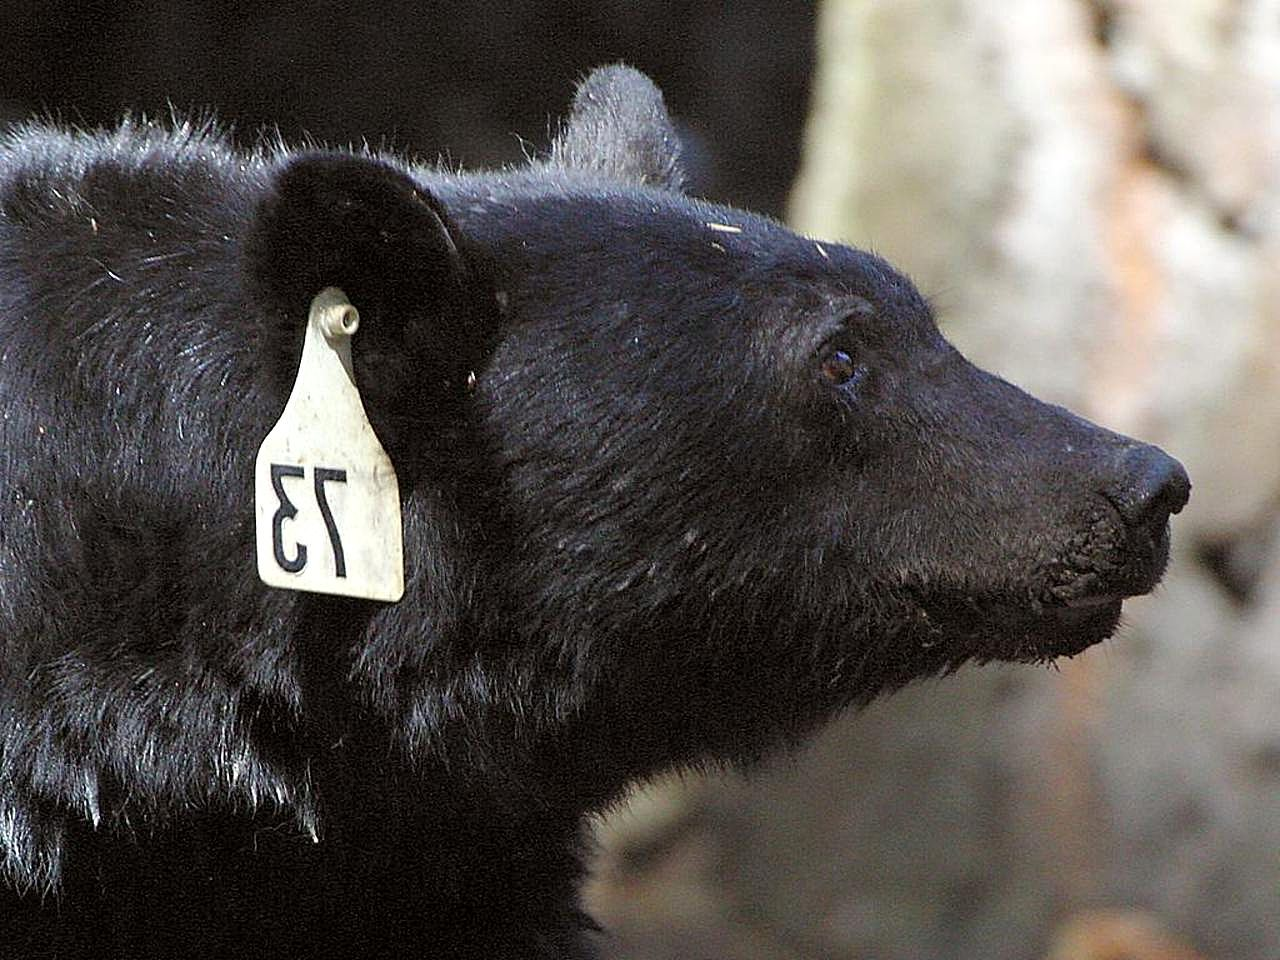 Black bear head profile - photo#15